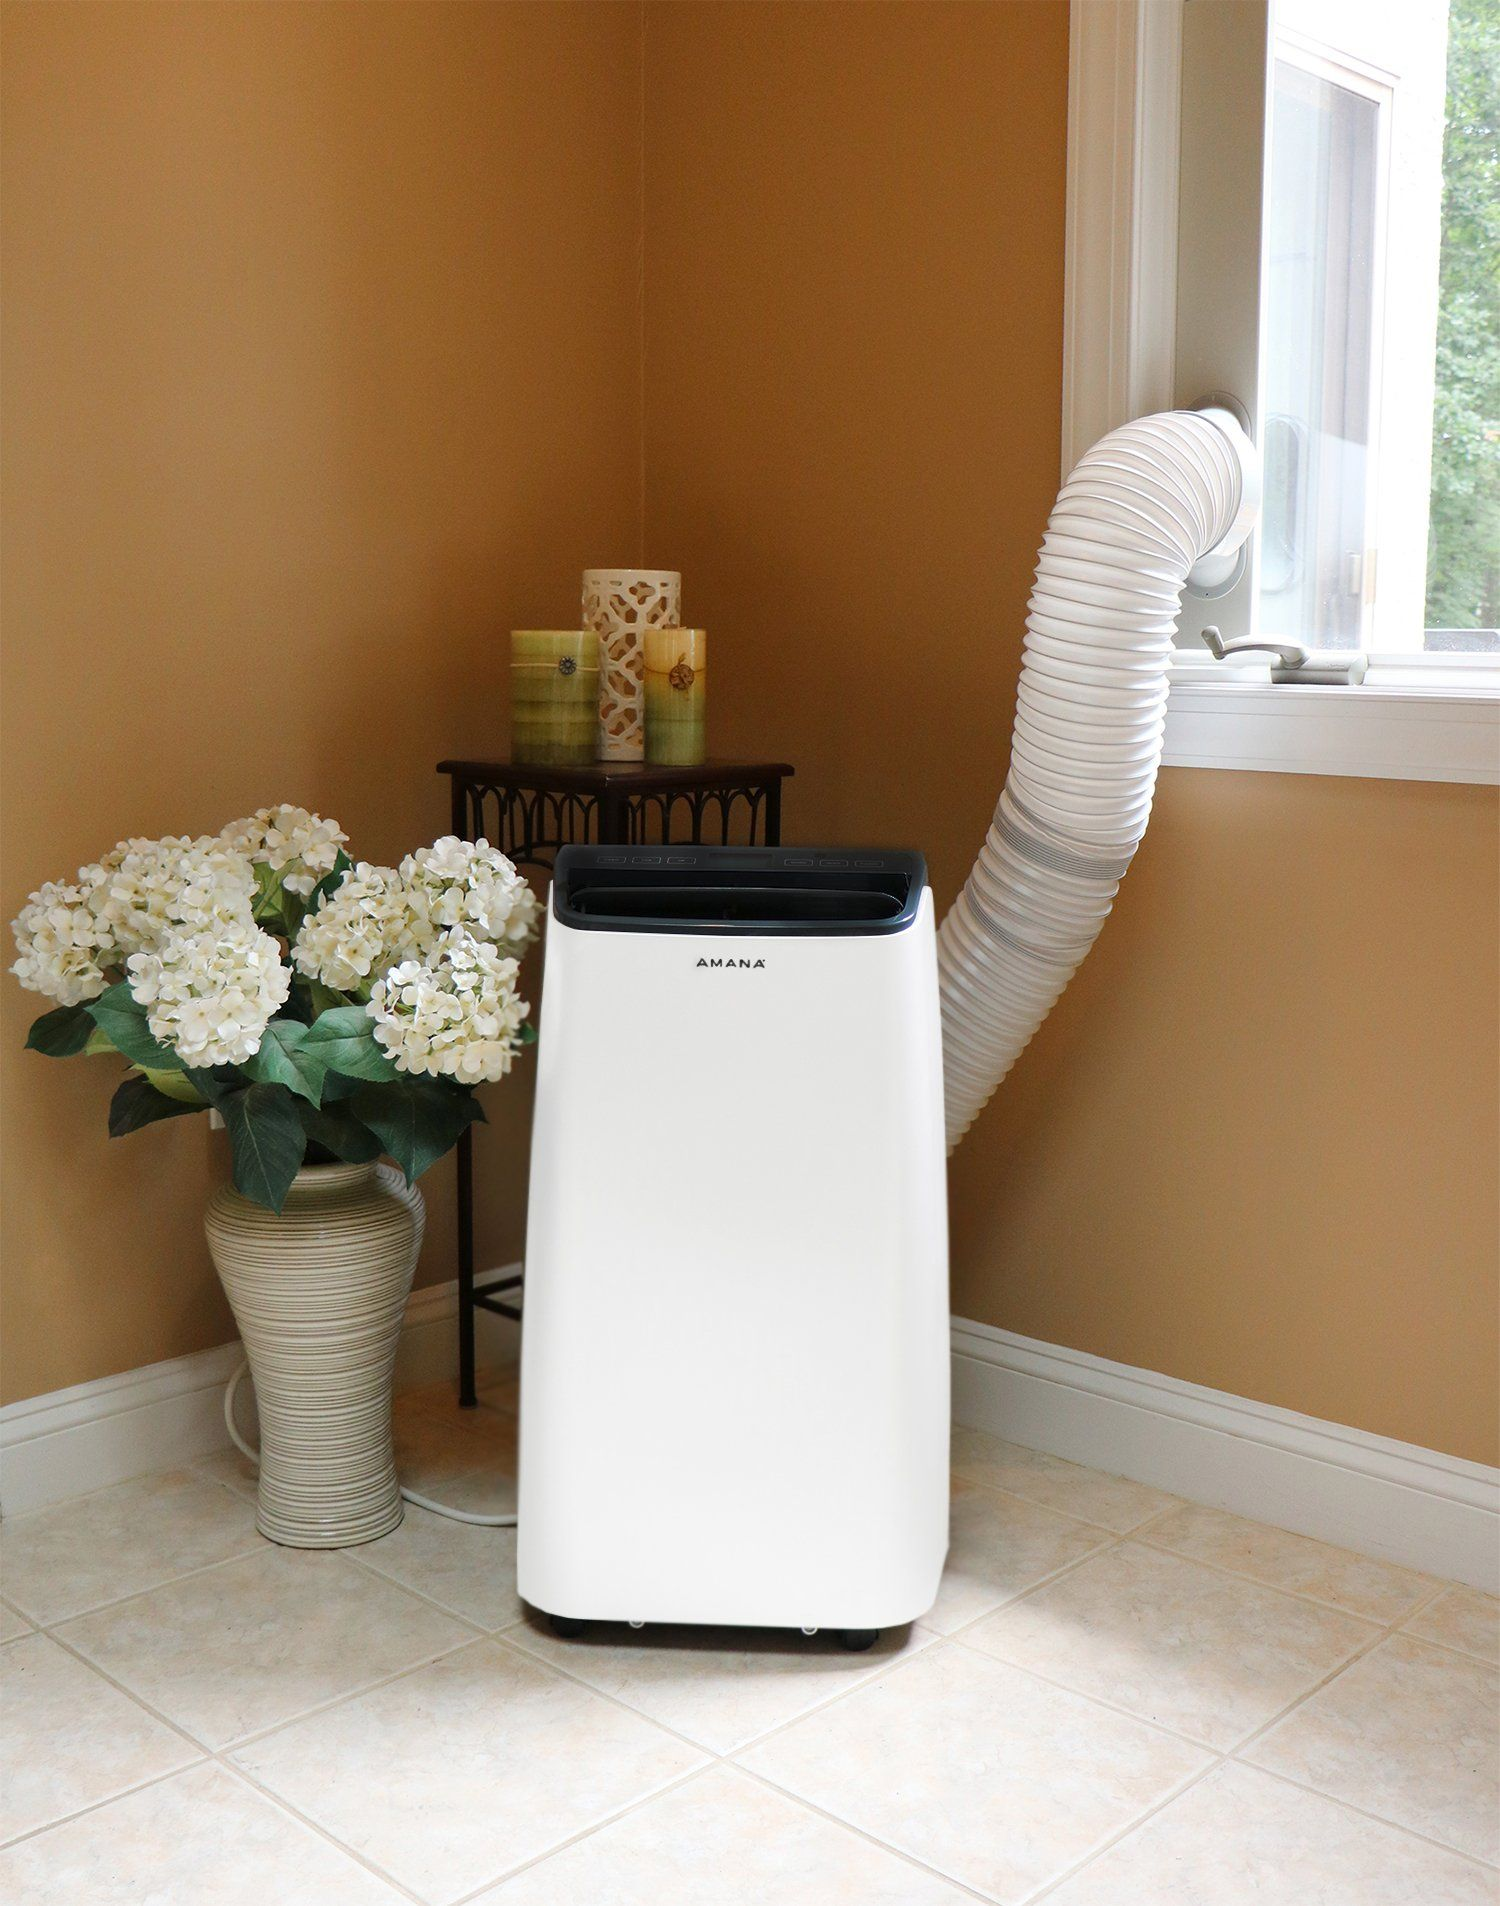 Amana AMAP121AB Portable Air Conditioner with Remote